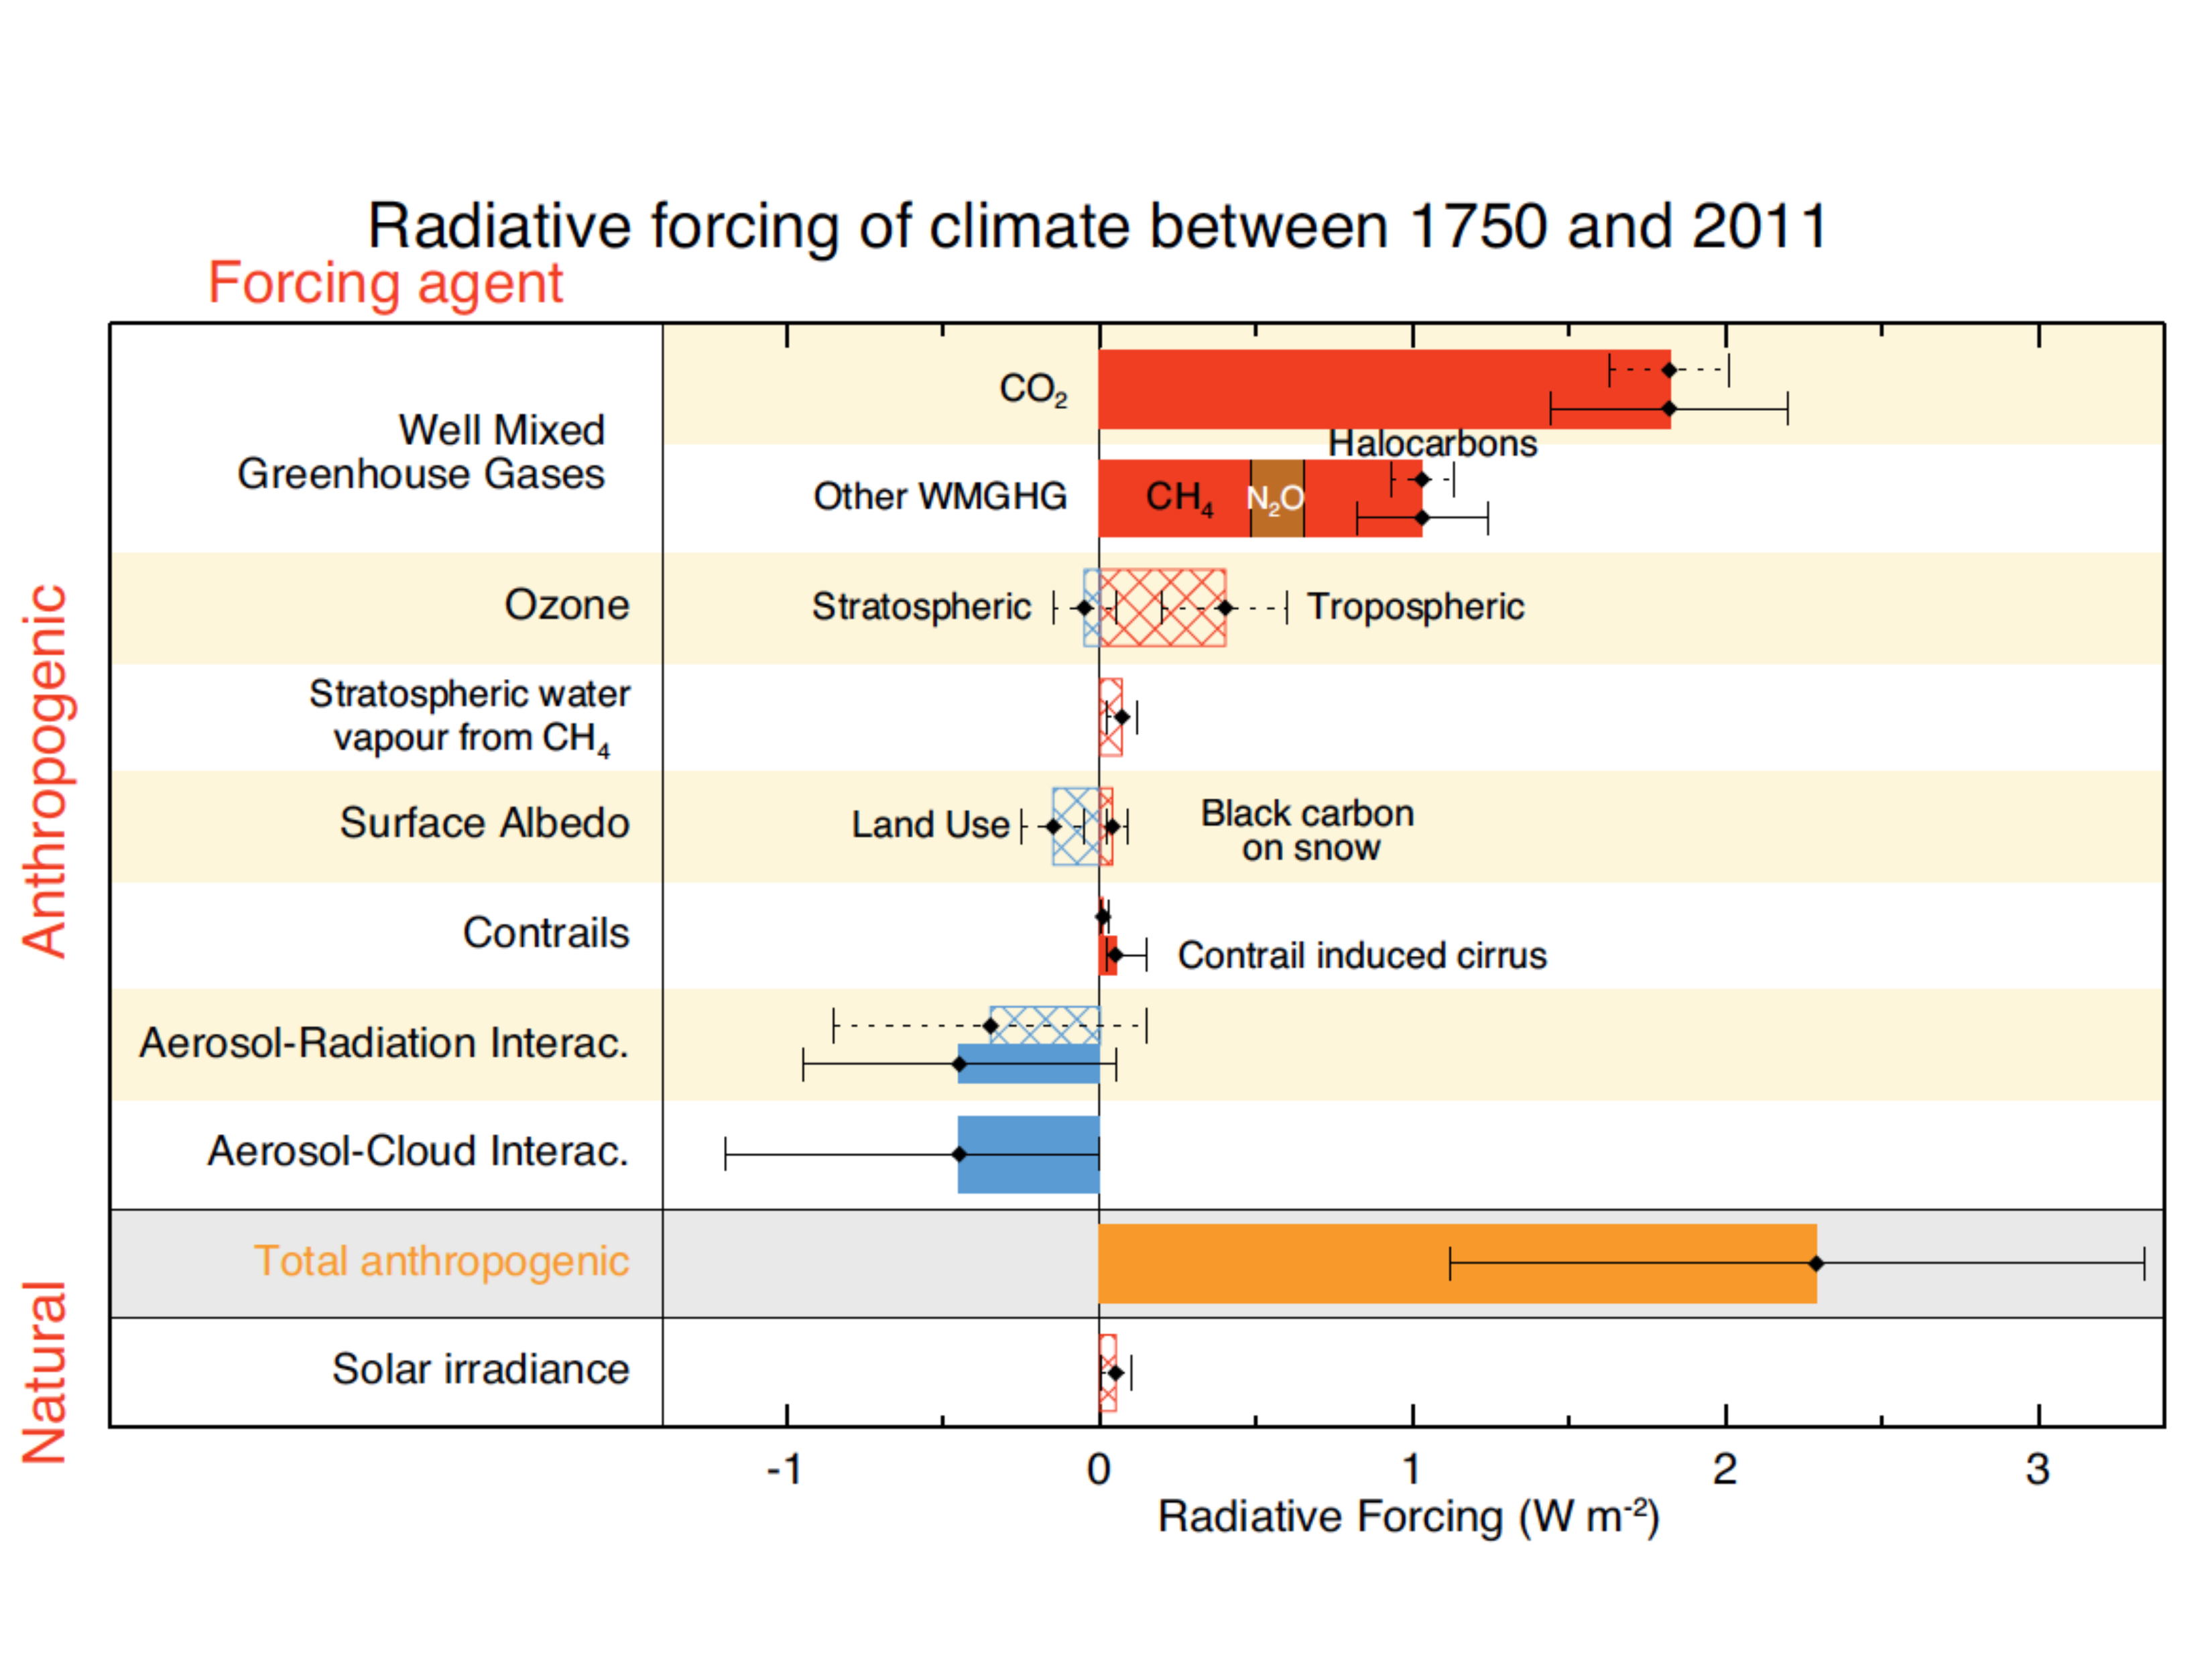 Summary of radiative forcings. From IPCC (2013). Hatched bars denote low confidence and scientific understanding.